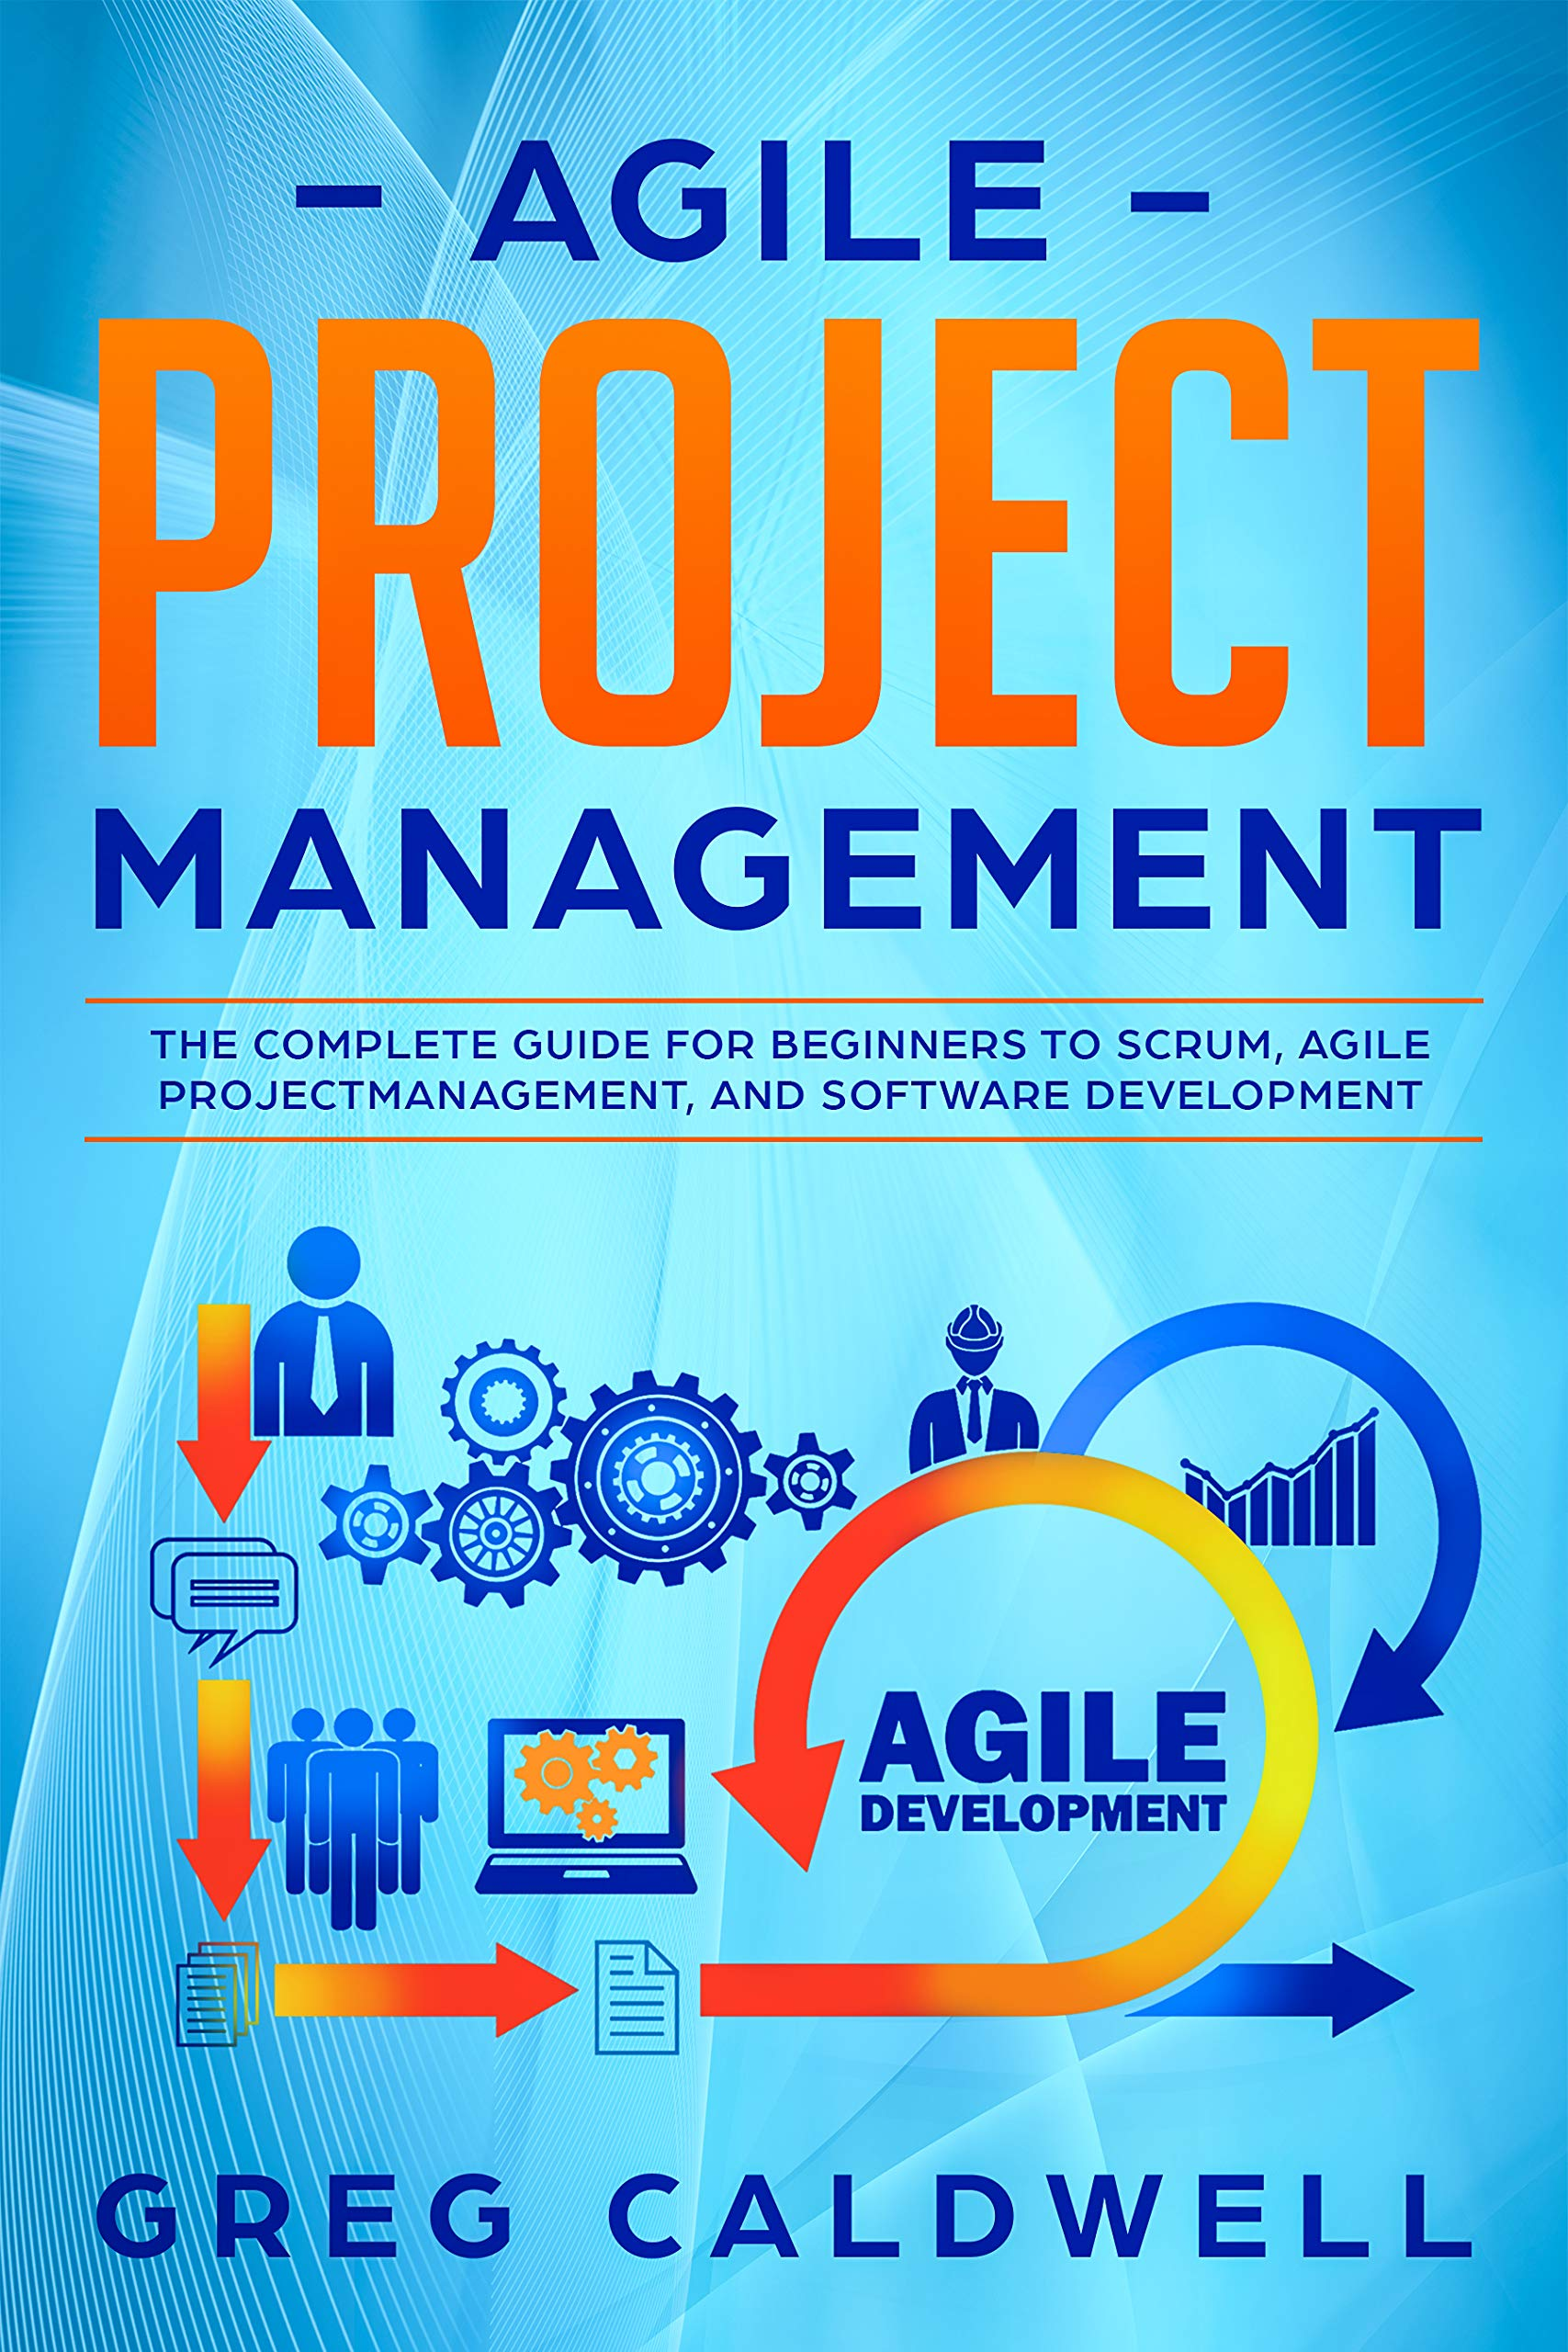 Agile Project Management: The Complete Guide for Beginners to Scrum, Agile Project Management, and Software Development (Lean Guides with Scrum, Sprint, Kanban, DSDM, XP & Crystal Book 6)